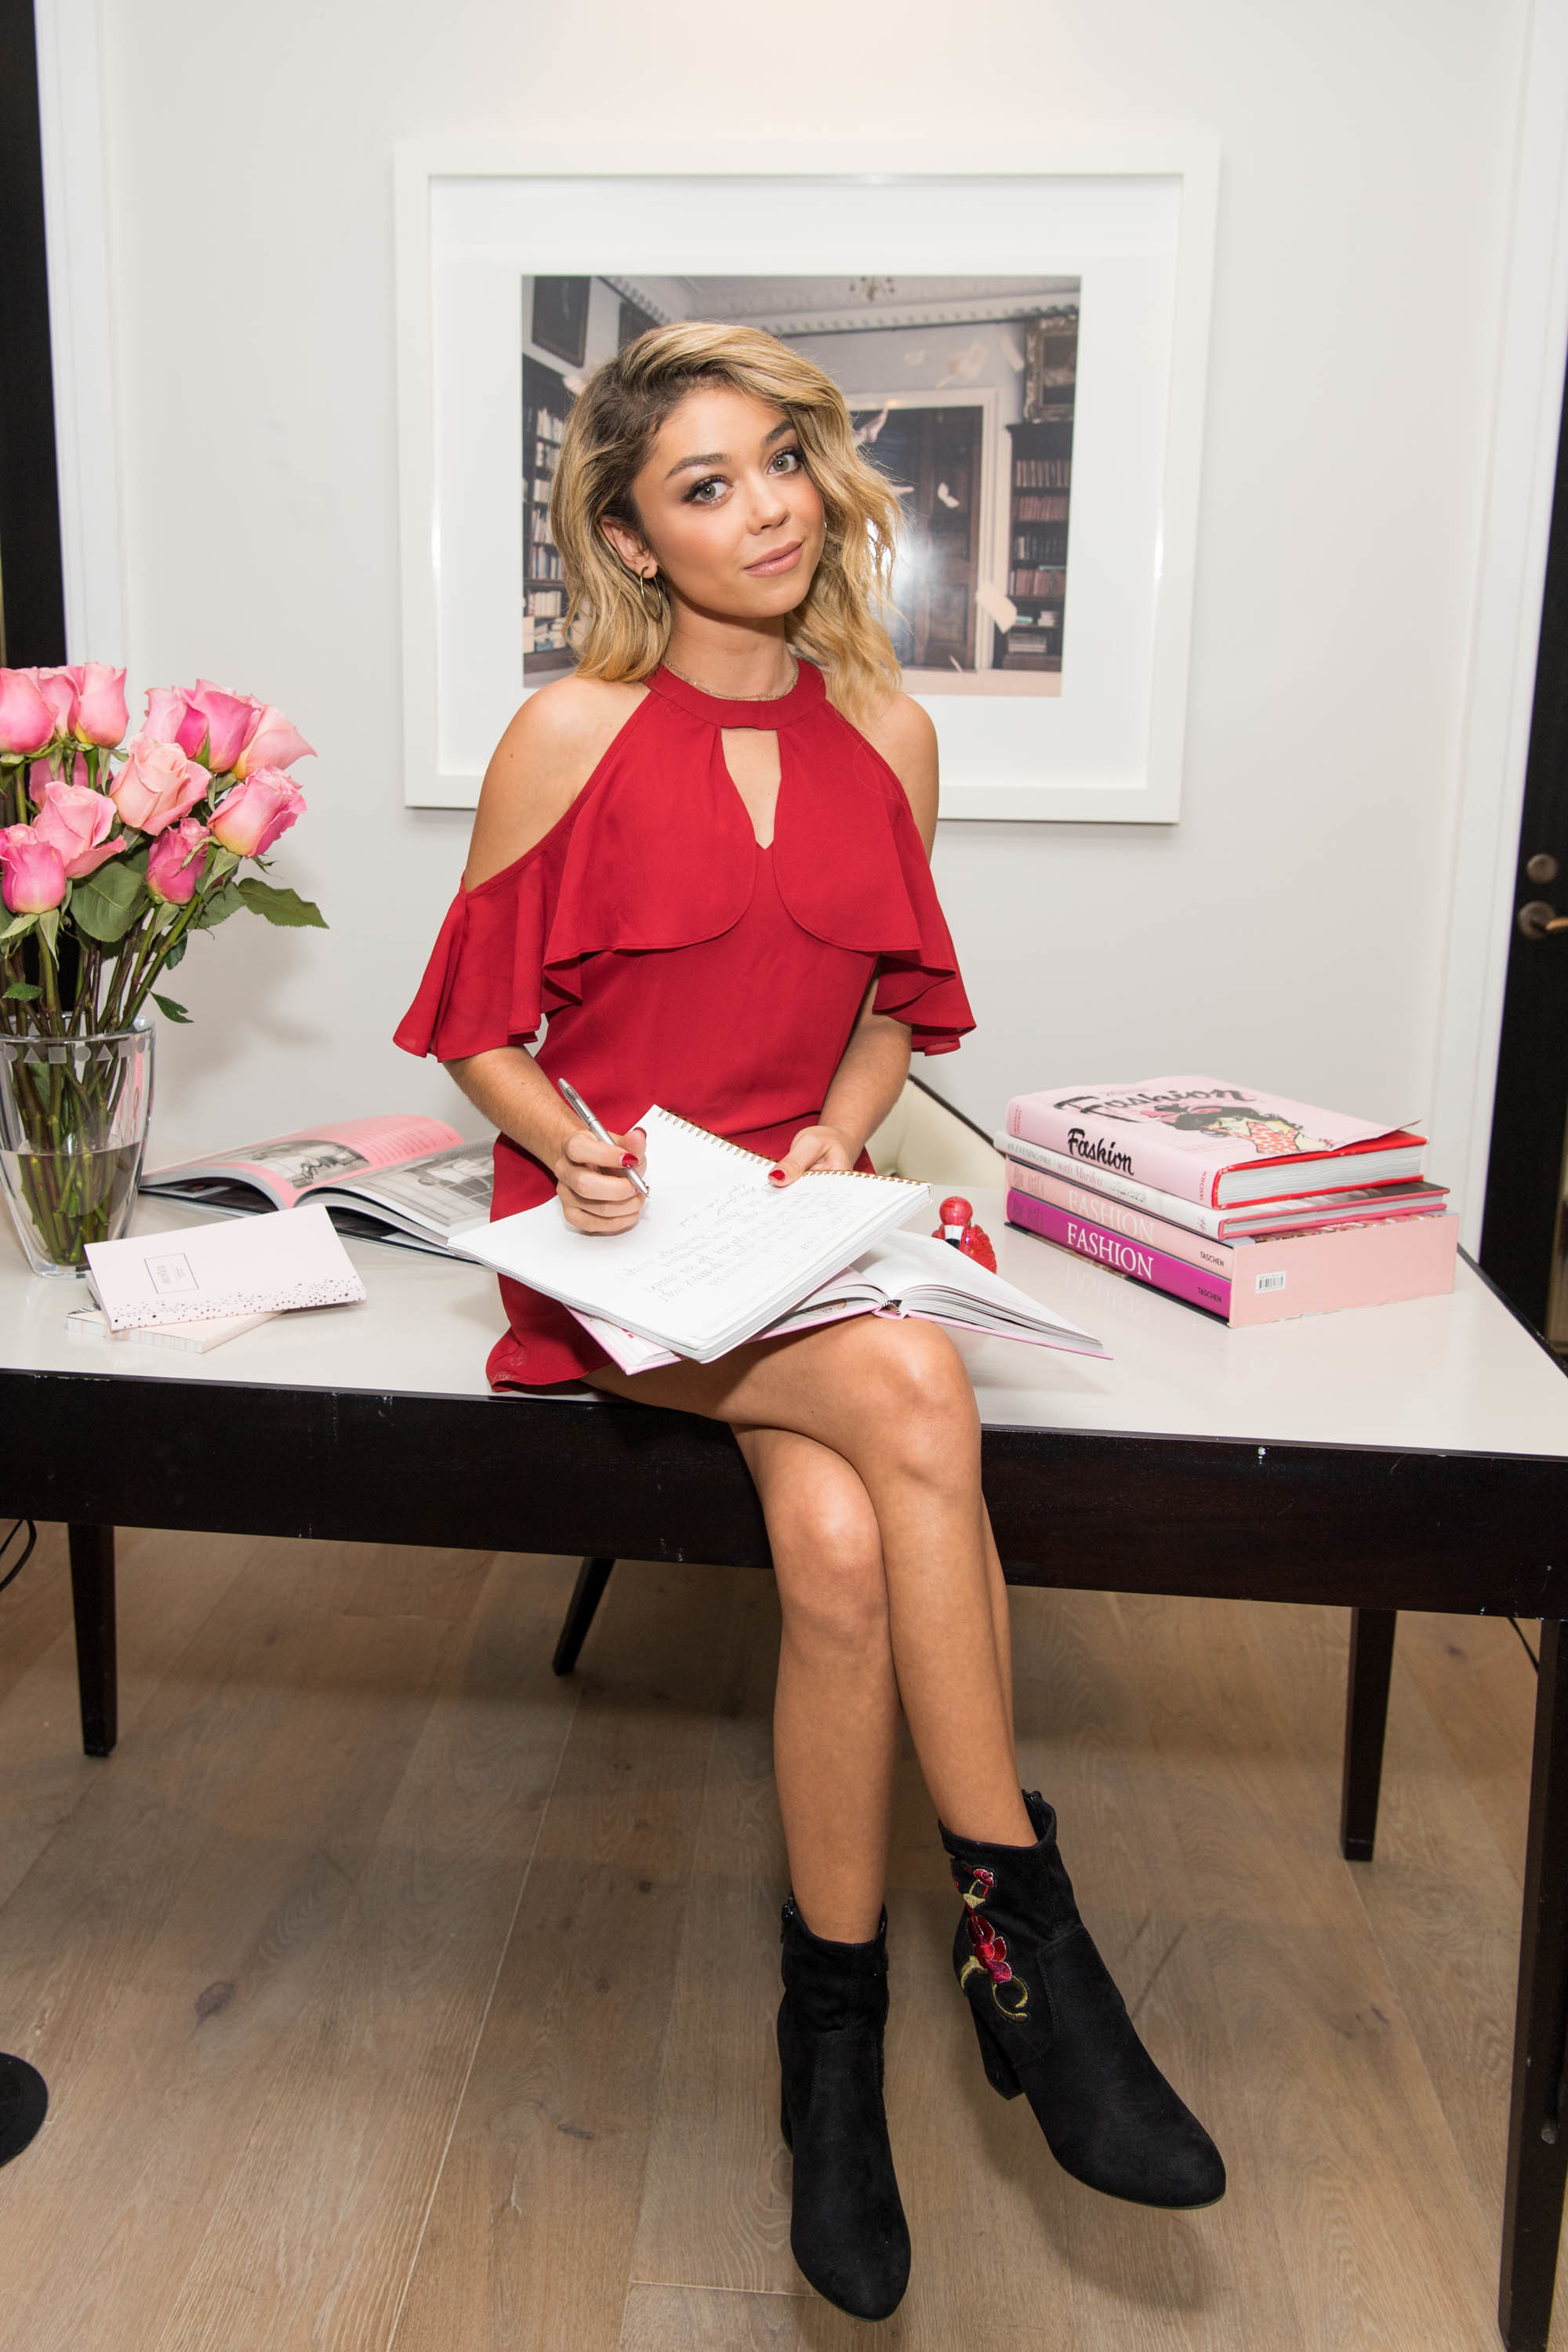 Candie's Creative Director Sarah Hyland shares her back to school campaign and collection at The London Hotel in West Hollywood on July 17, 2017.